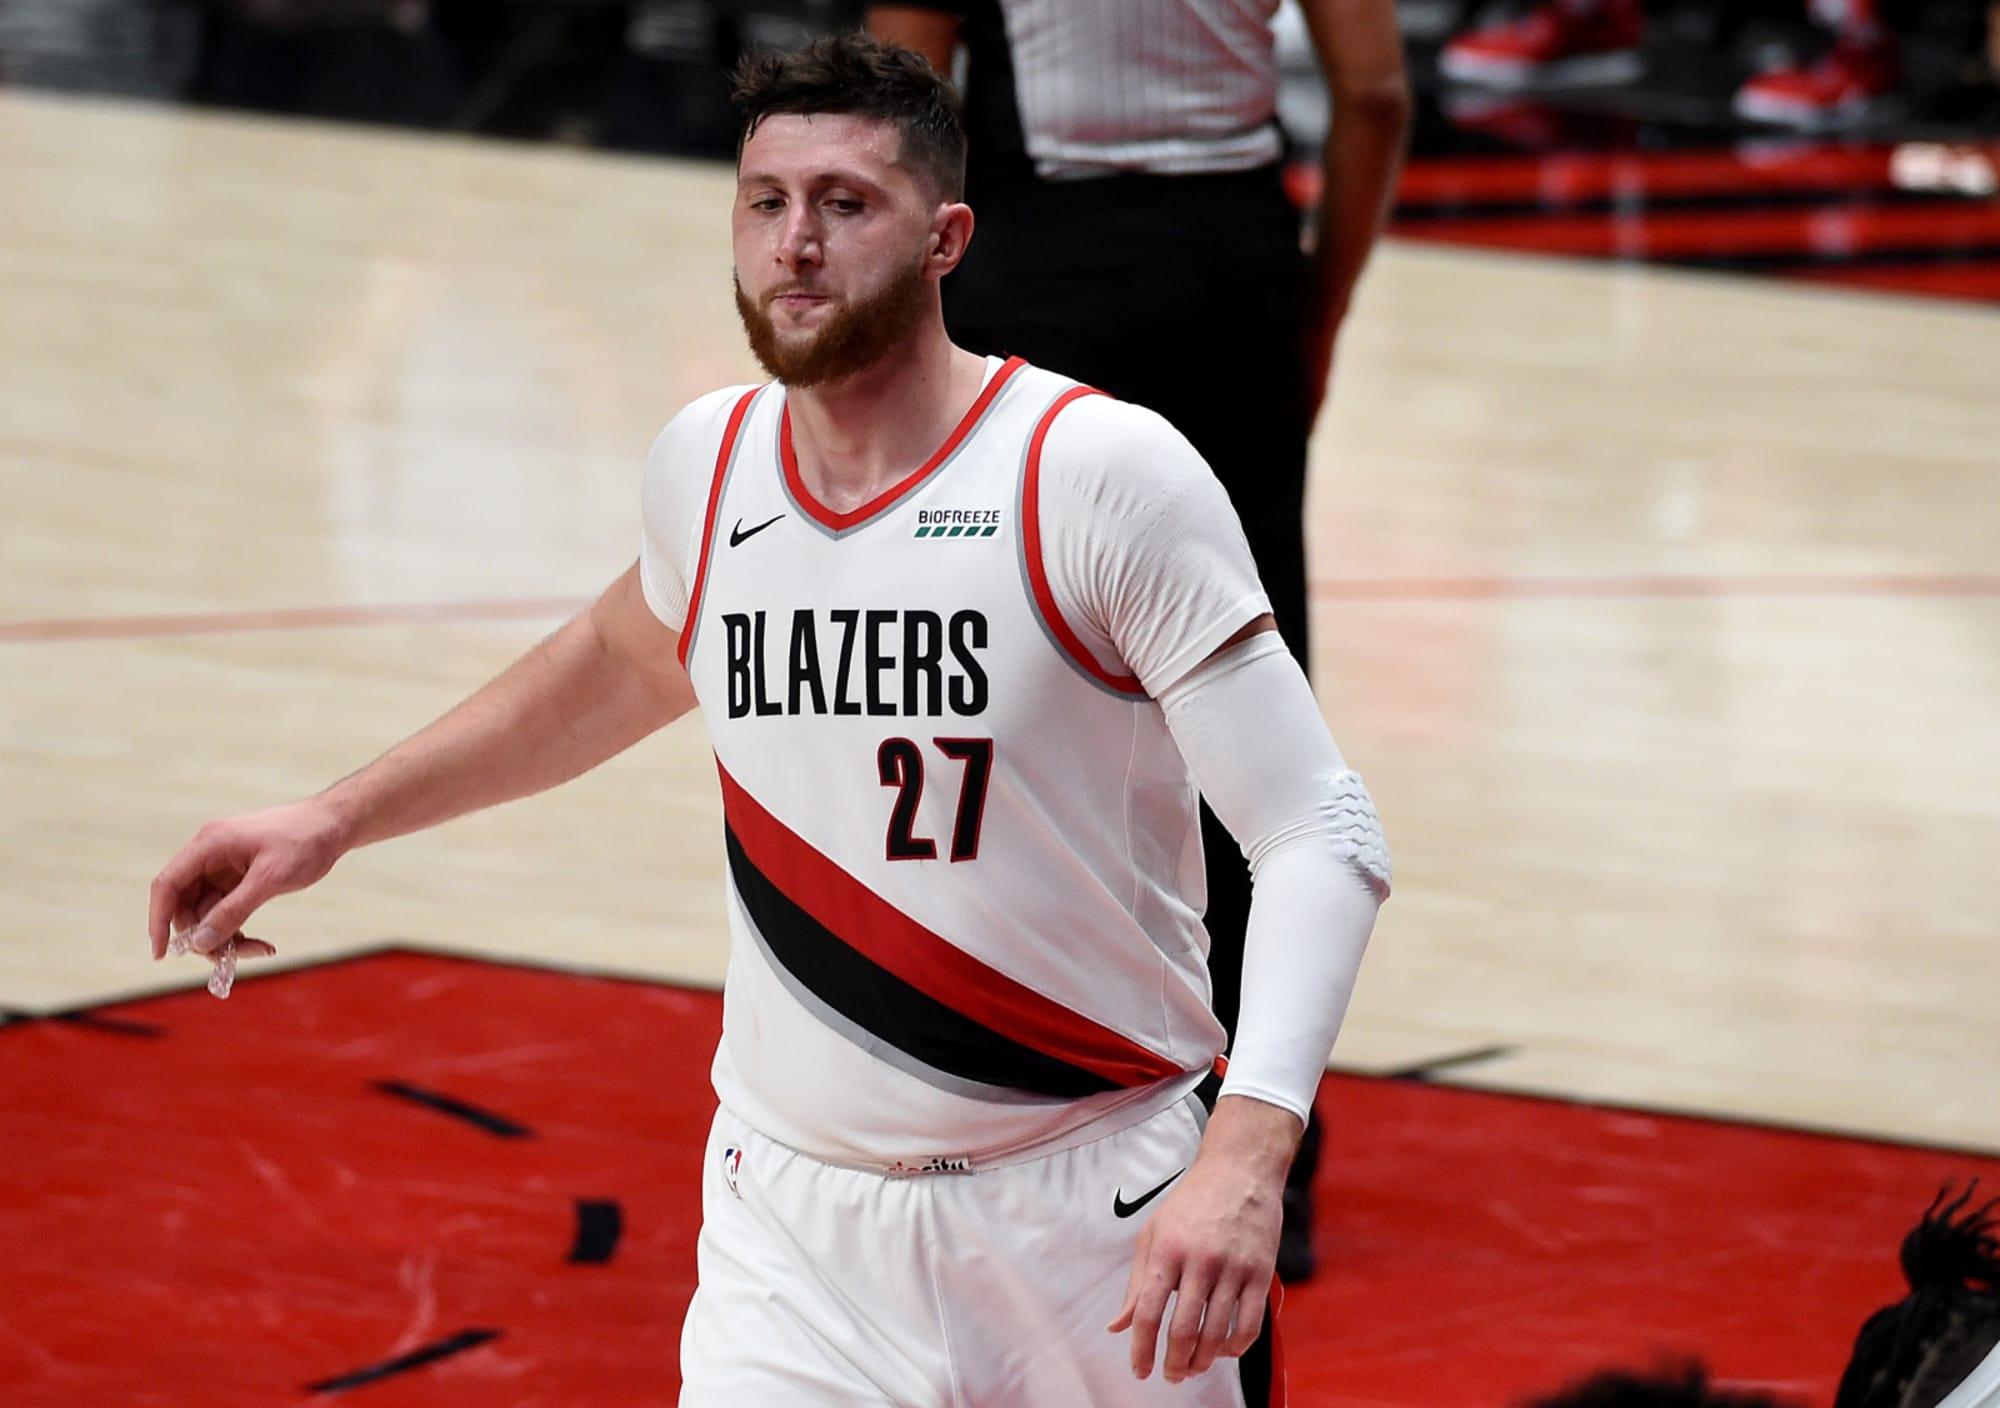 Toronto Raptors: Could Jusuf Nurkic be a target after comments following elimination?